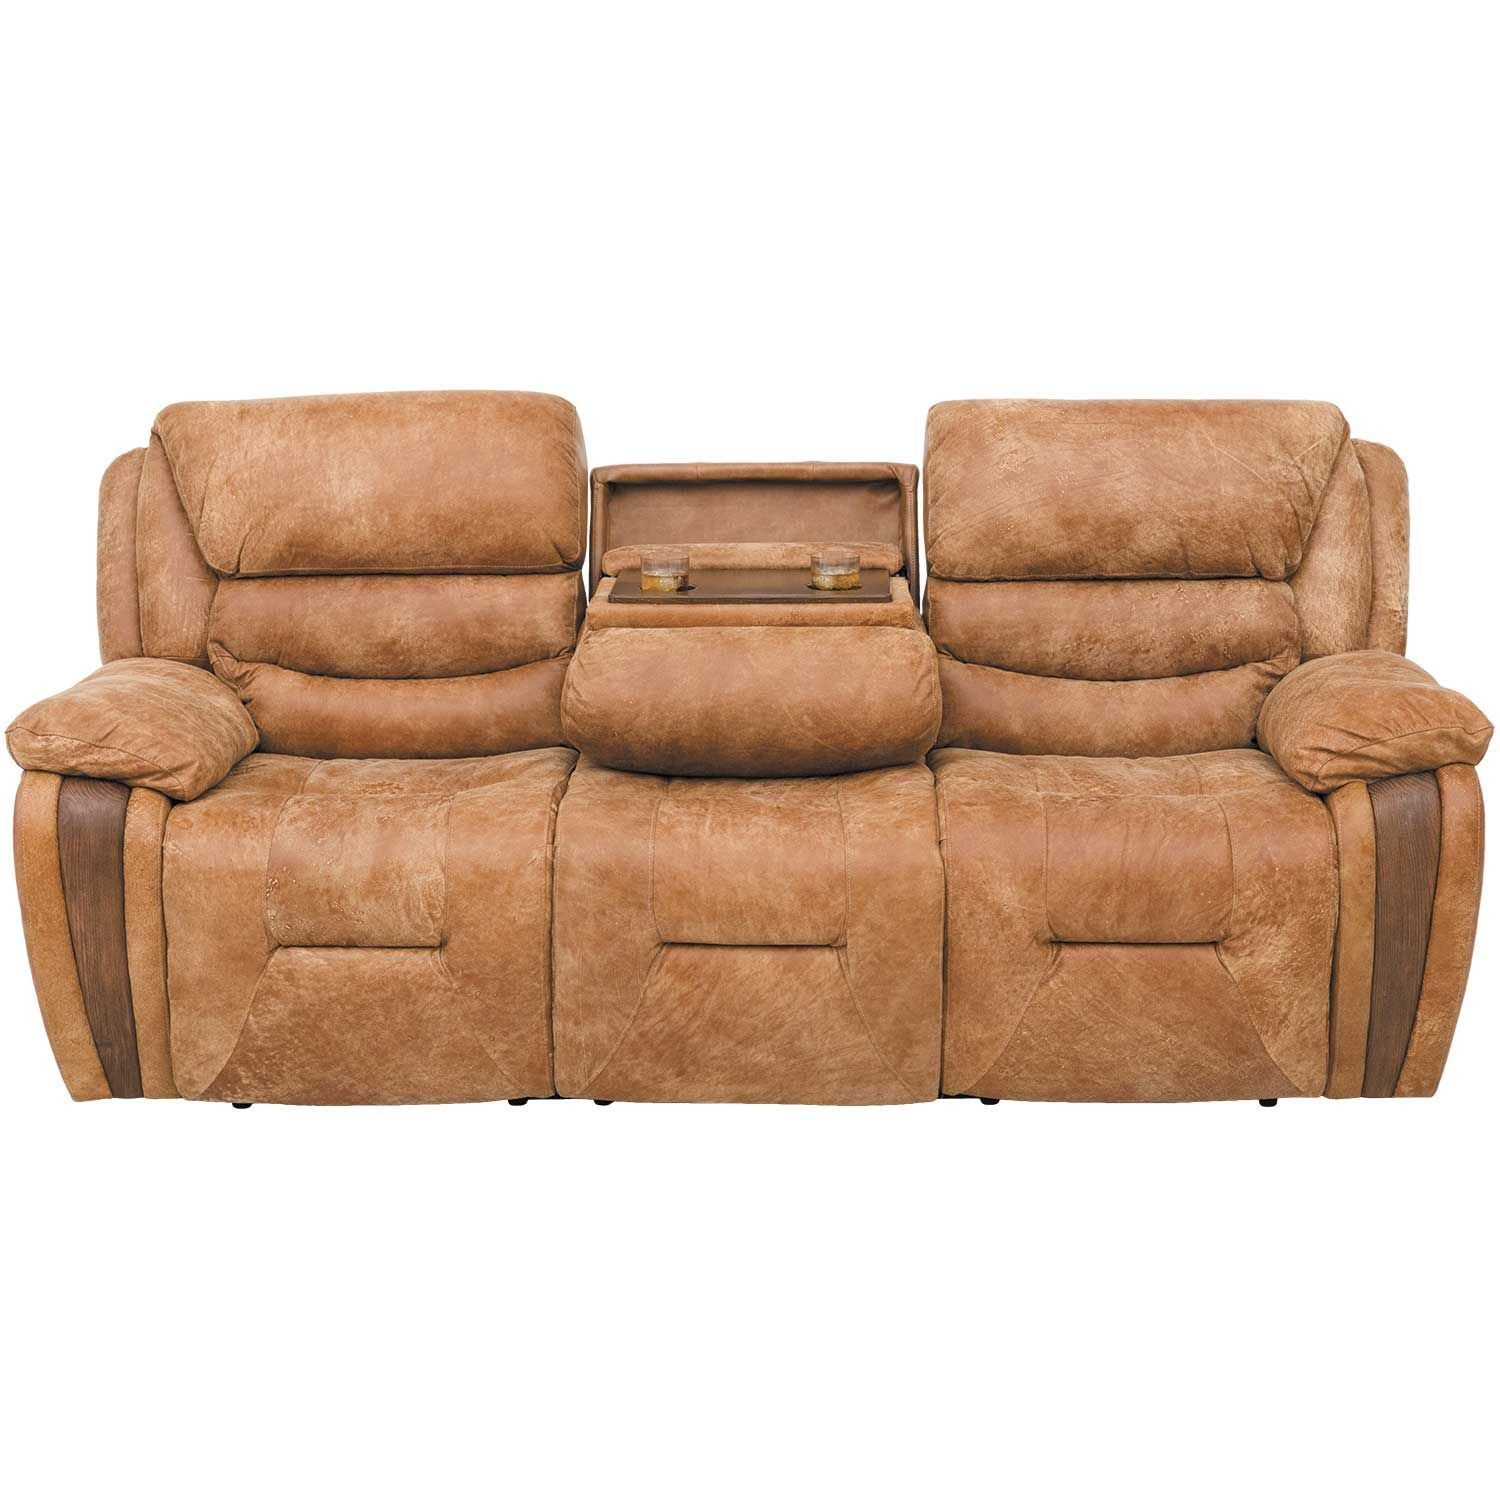 Wayne Leather Power Reclining Sofa with Drop Down Table 1E